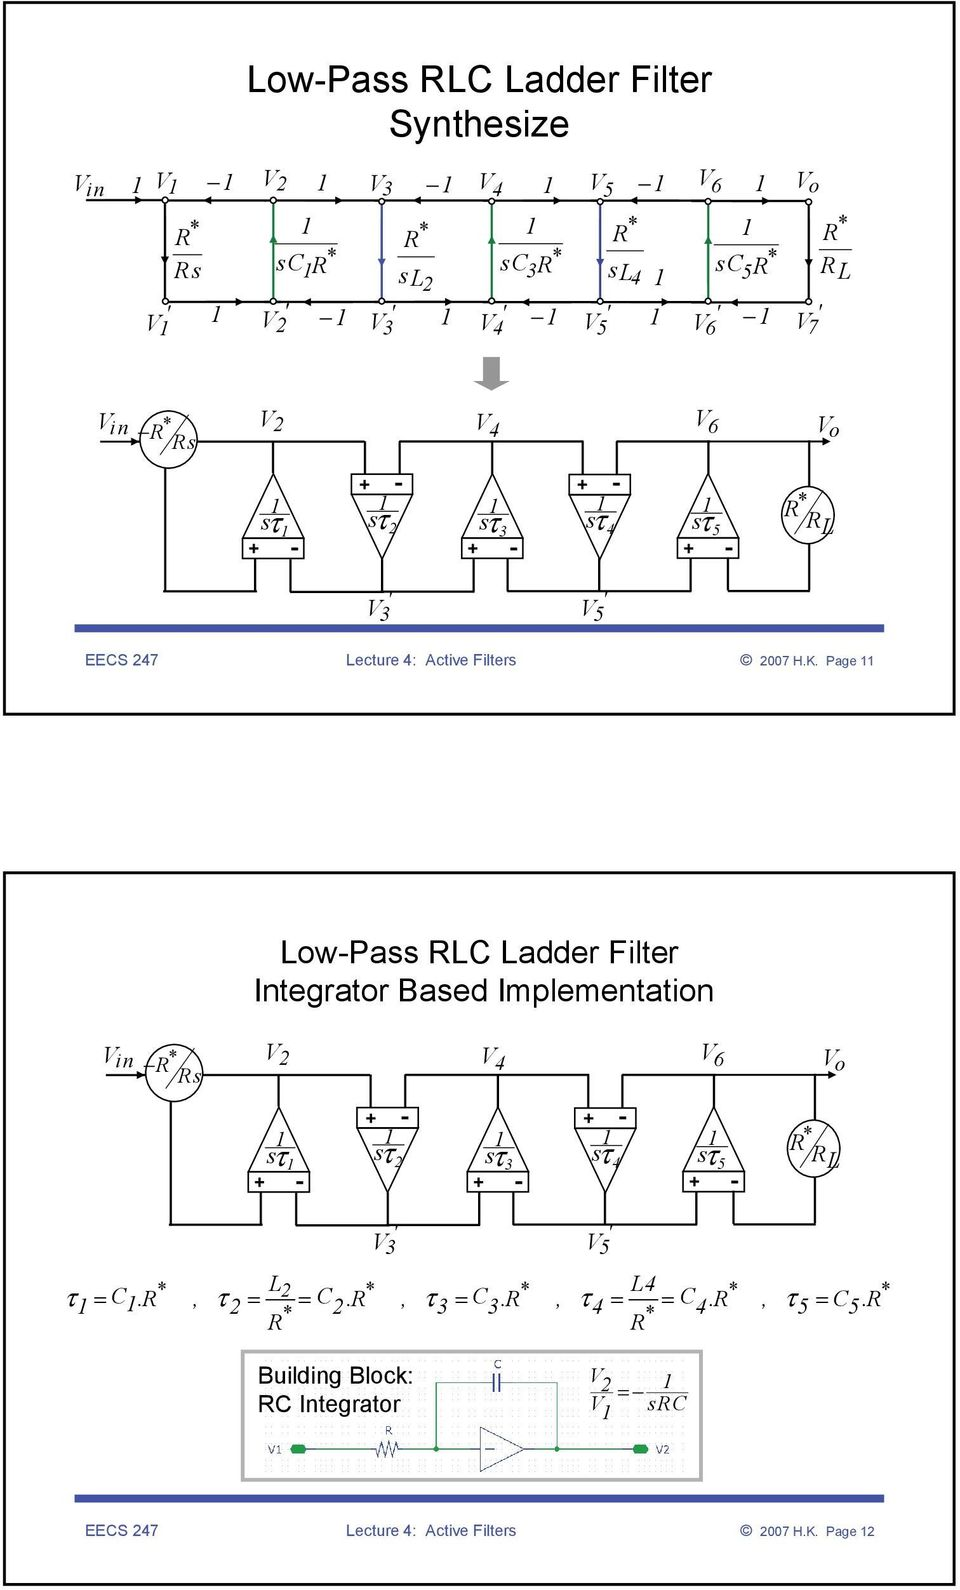 Pge LowPss C Ldder Filter Integrtor Bsed Implementtion in * R 2 4 6 sτ 2 sτ sτ 3 sτ 4 sτ 5 * R 3 * L2 * * L4 * * = C.